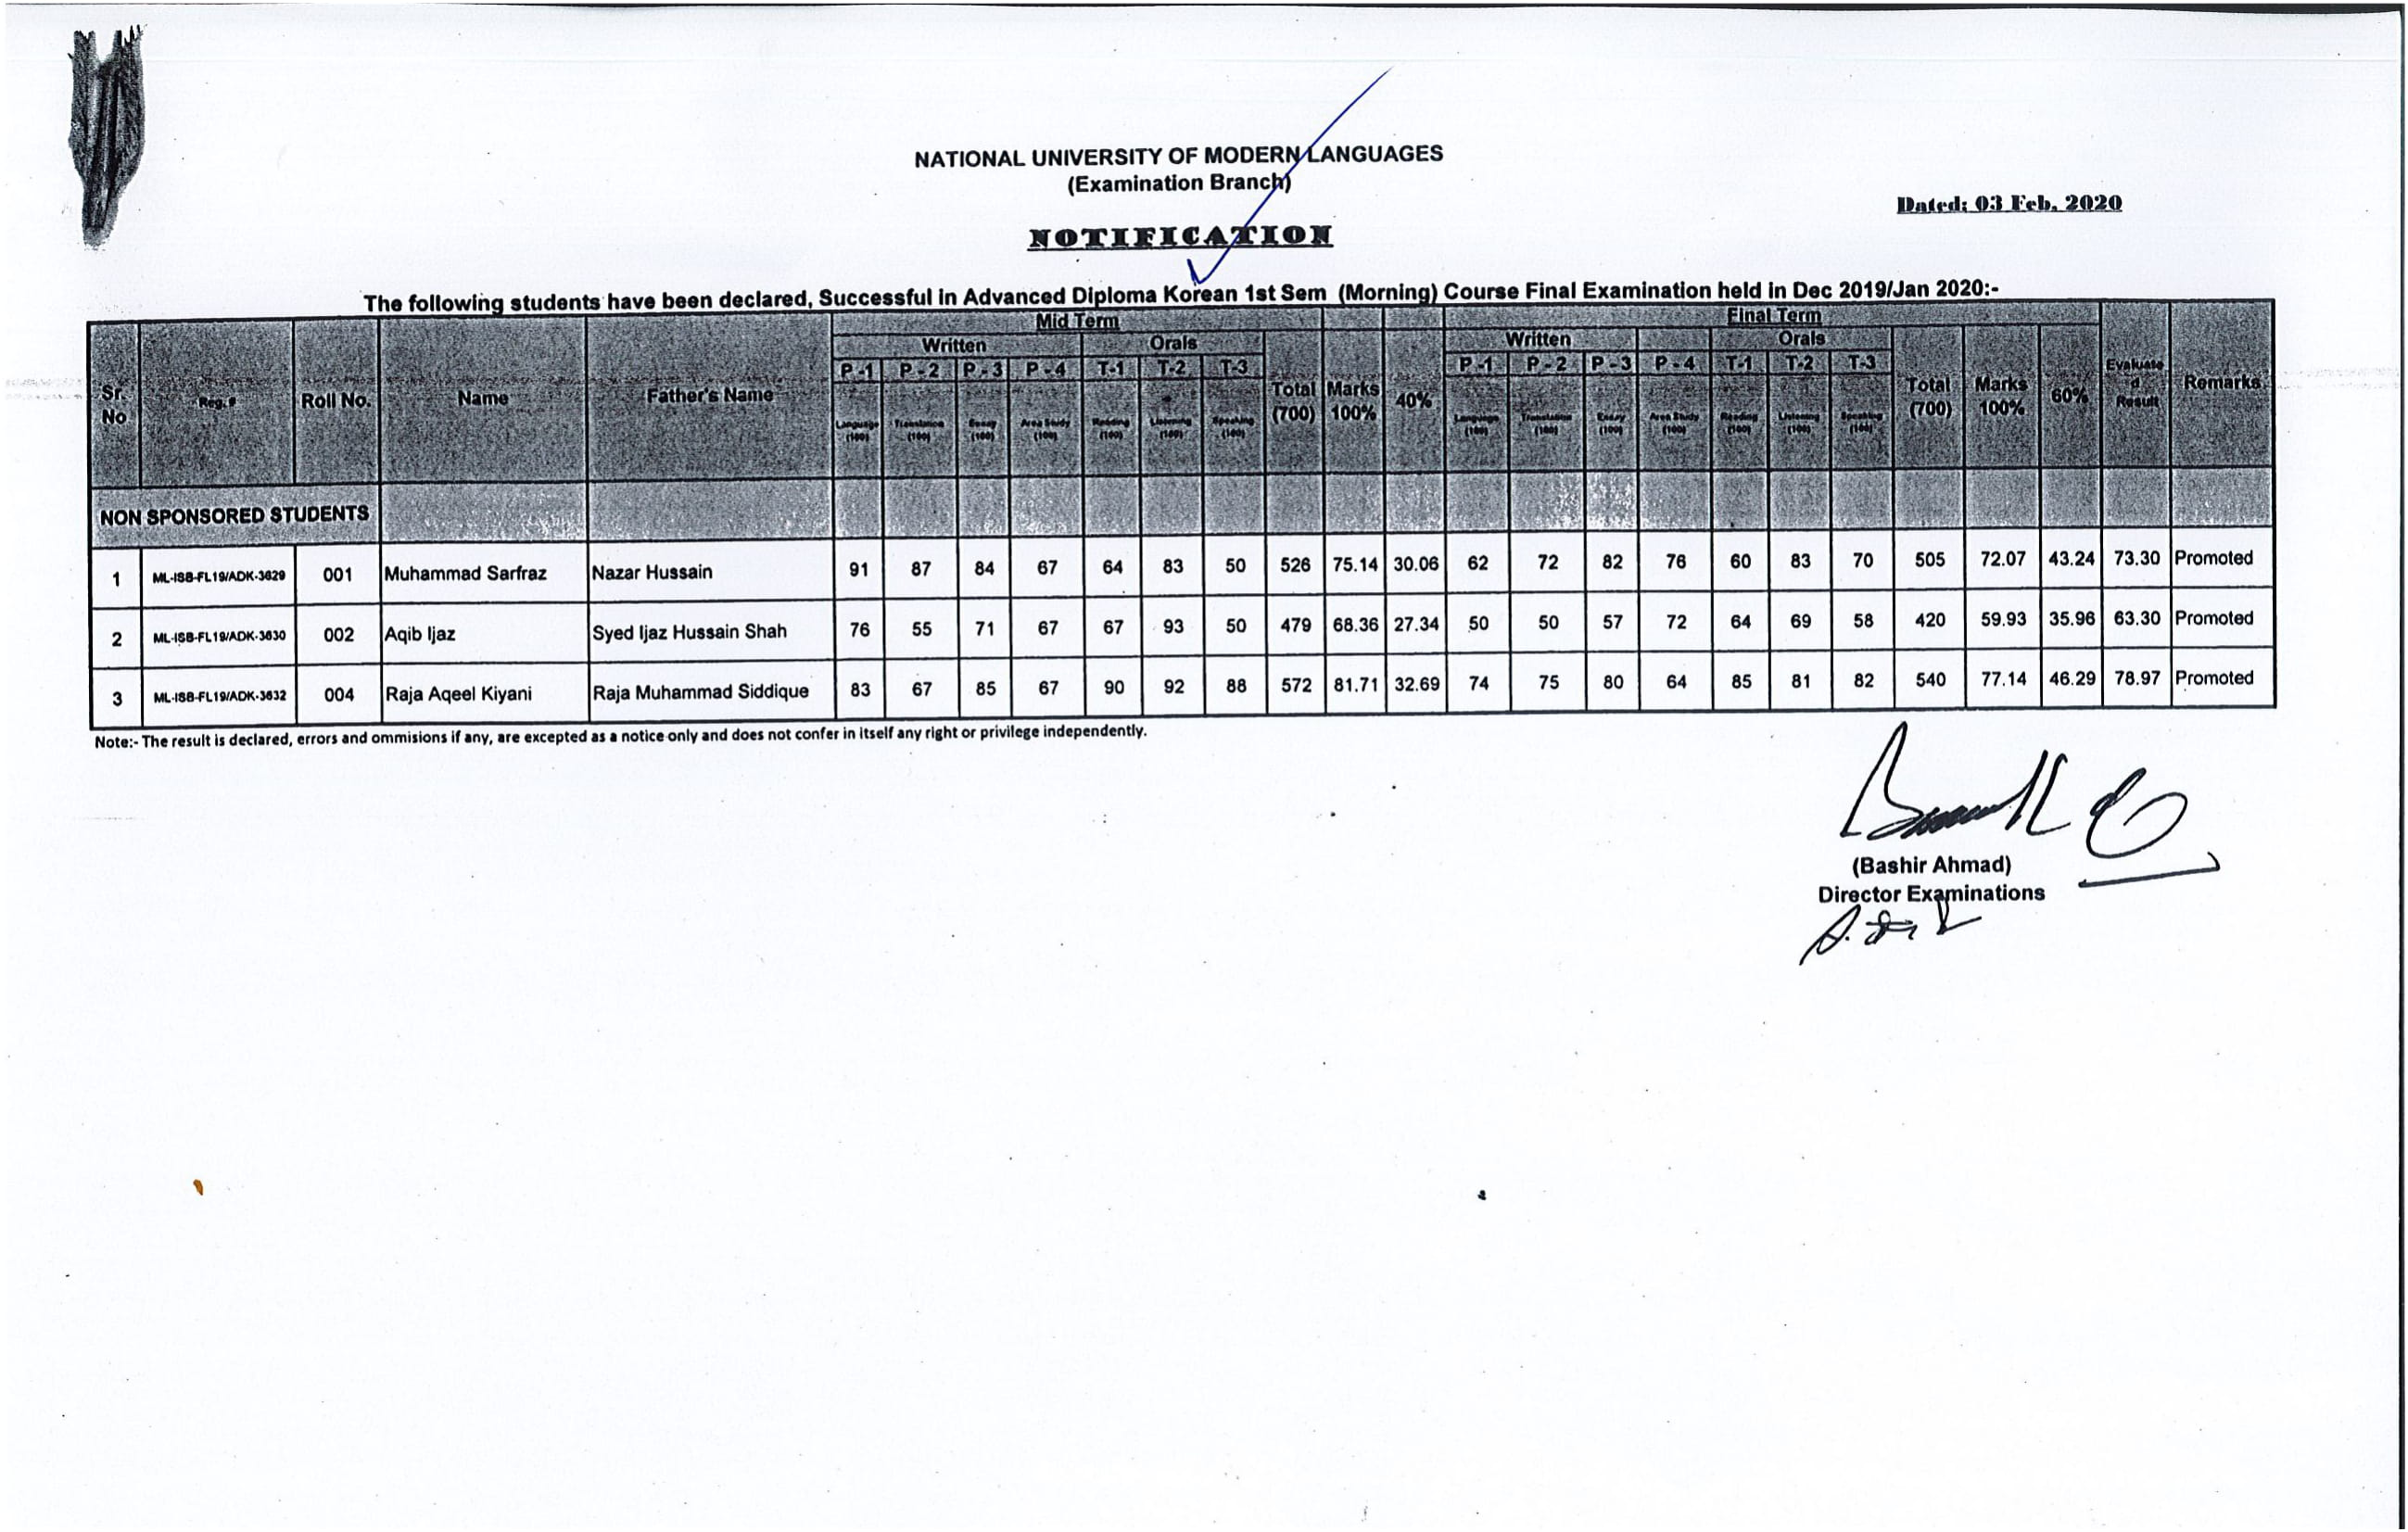 RESULT OF ADVANCE DIPLOMA - II (MORNING)